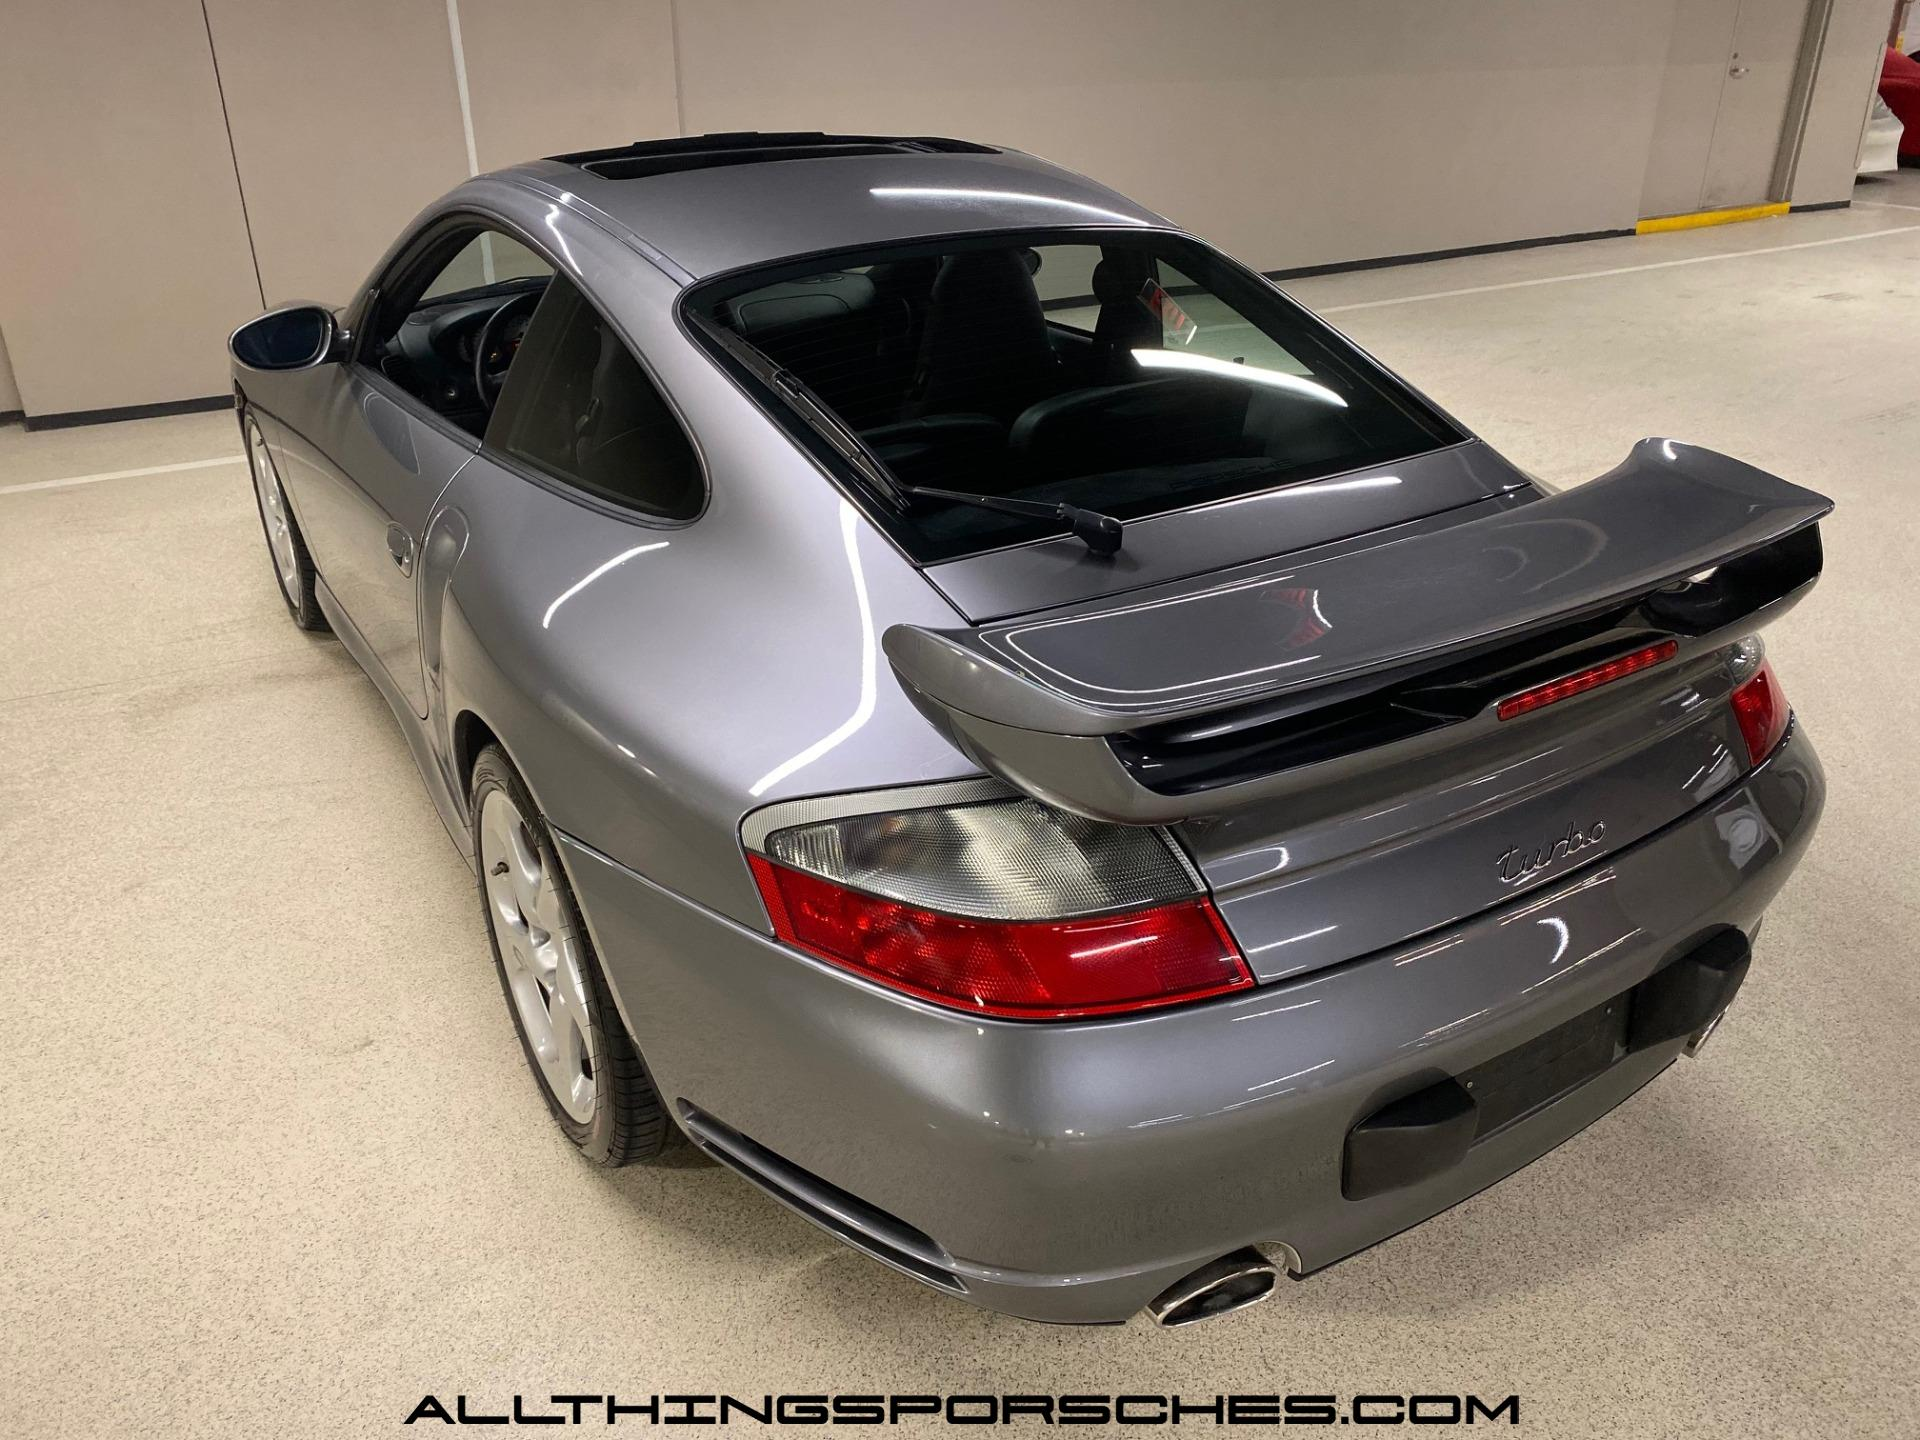 Used-2002-Porsche-911-Turbo